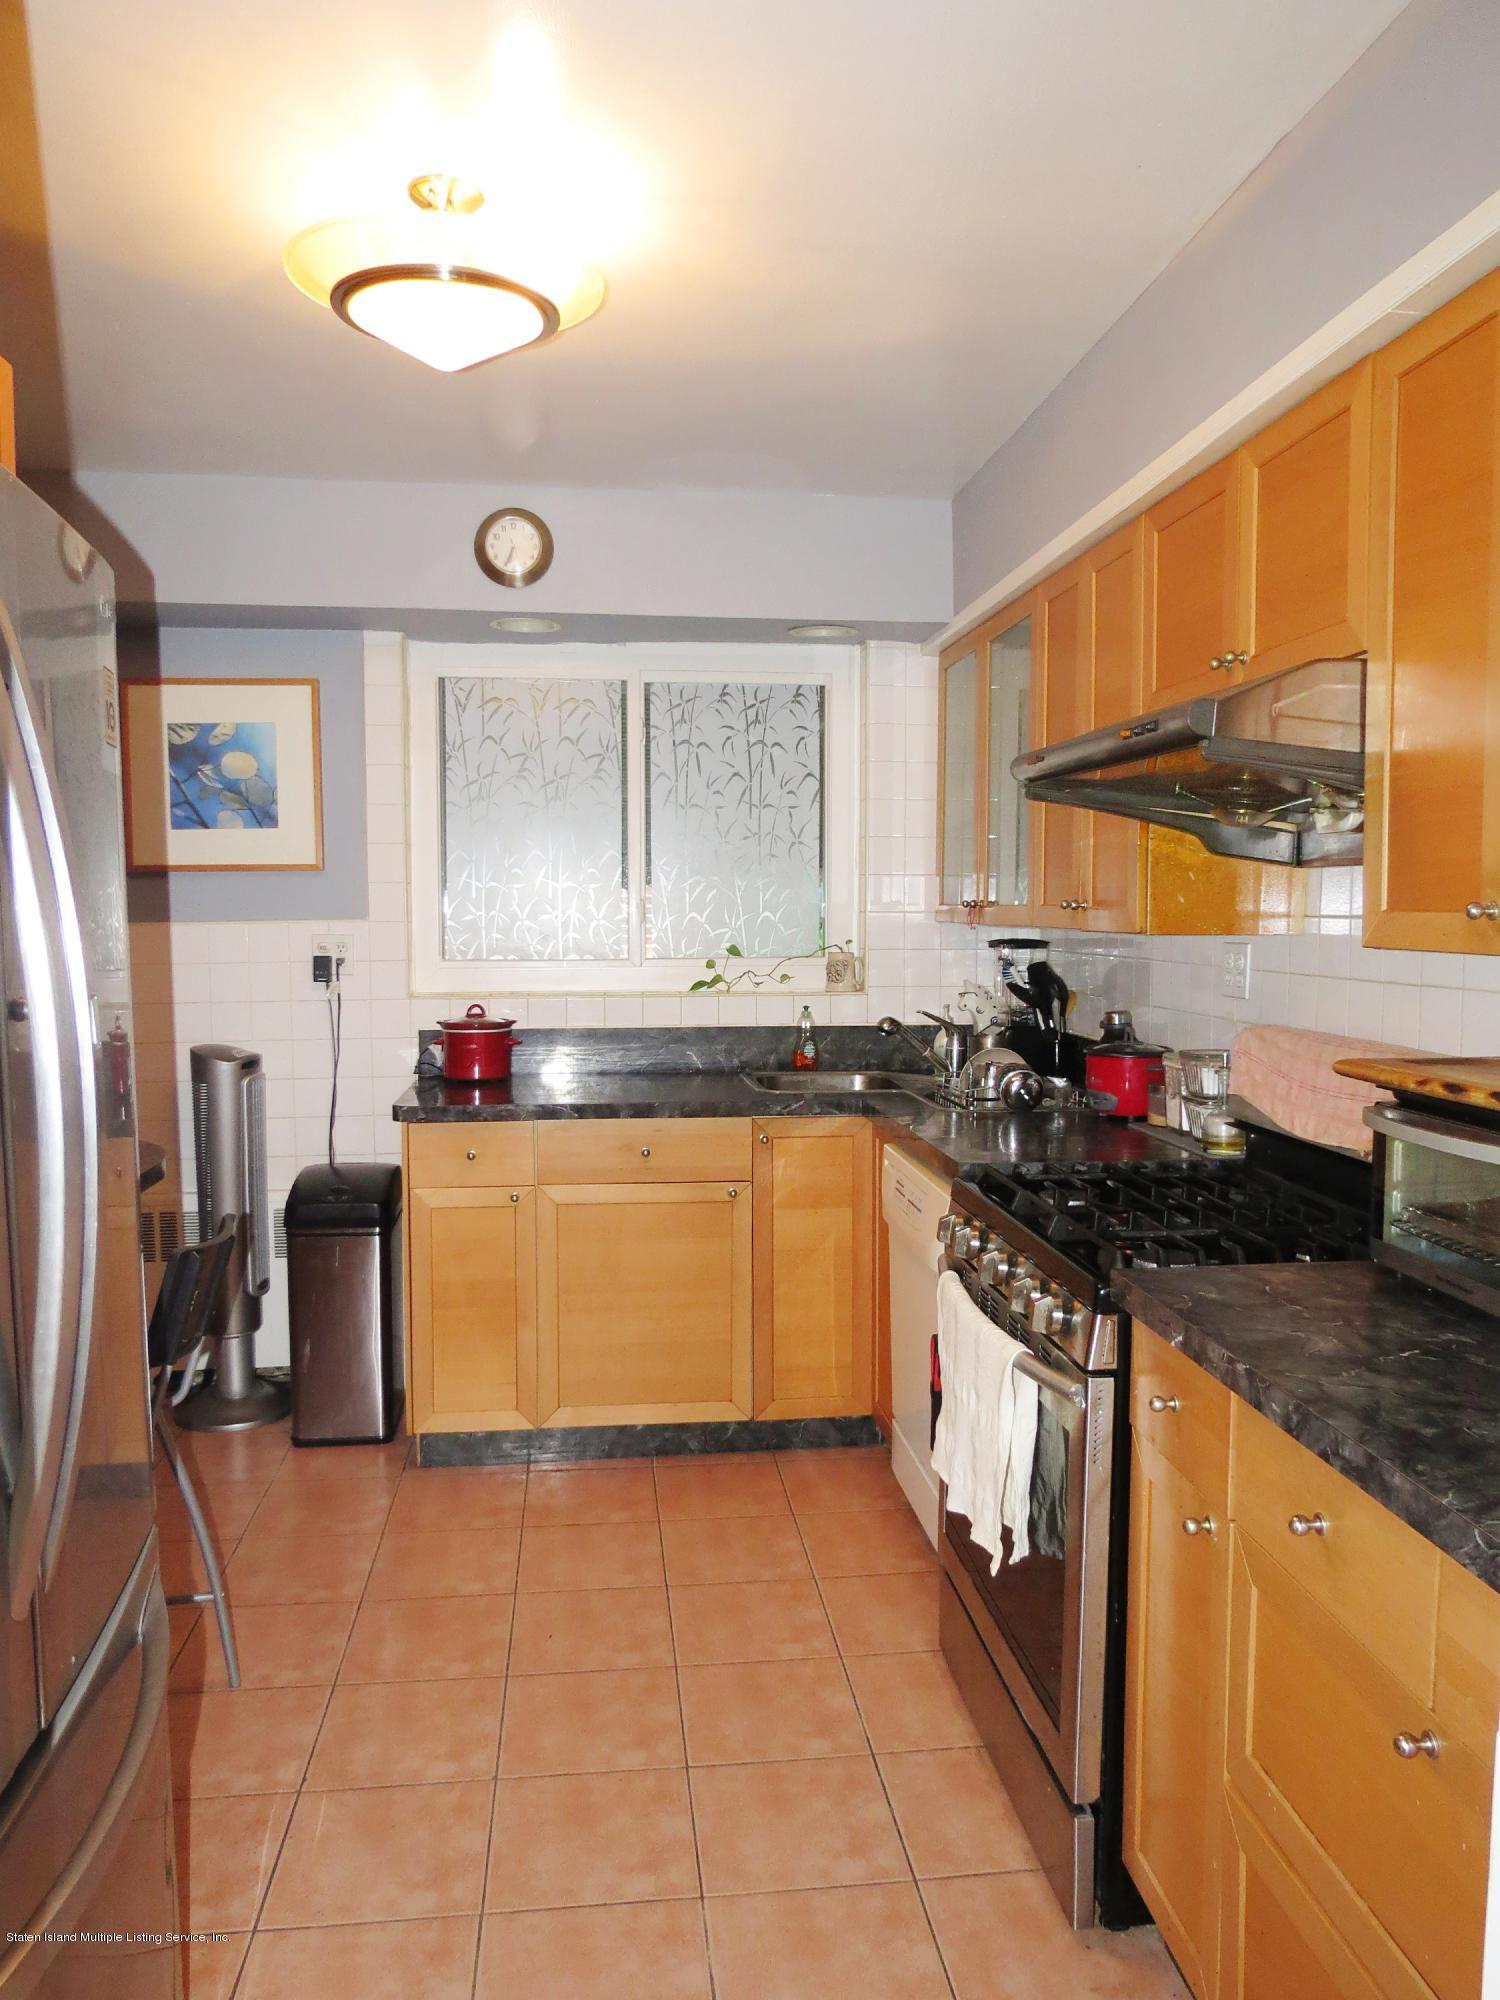 Single Family - Detached 8003 215th St   Queens, NY 11427, MLS-1131180-14